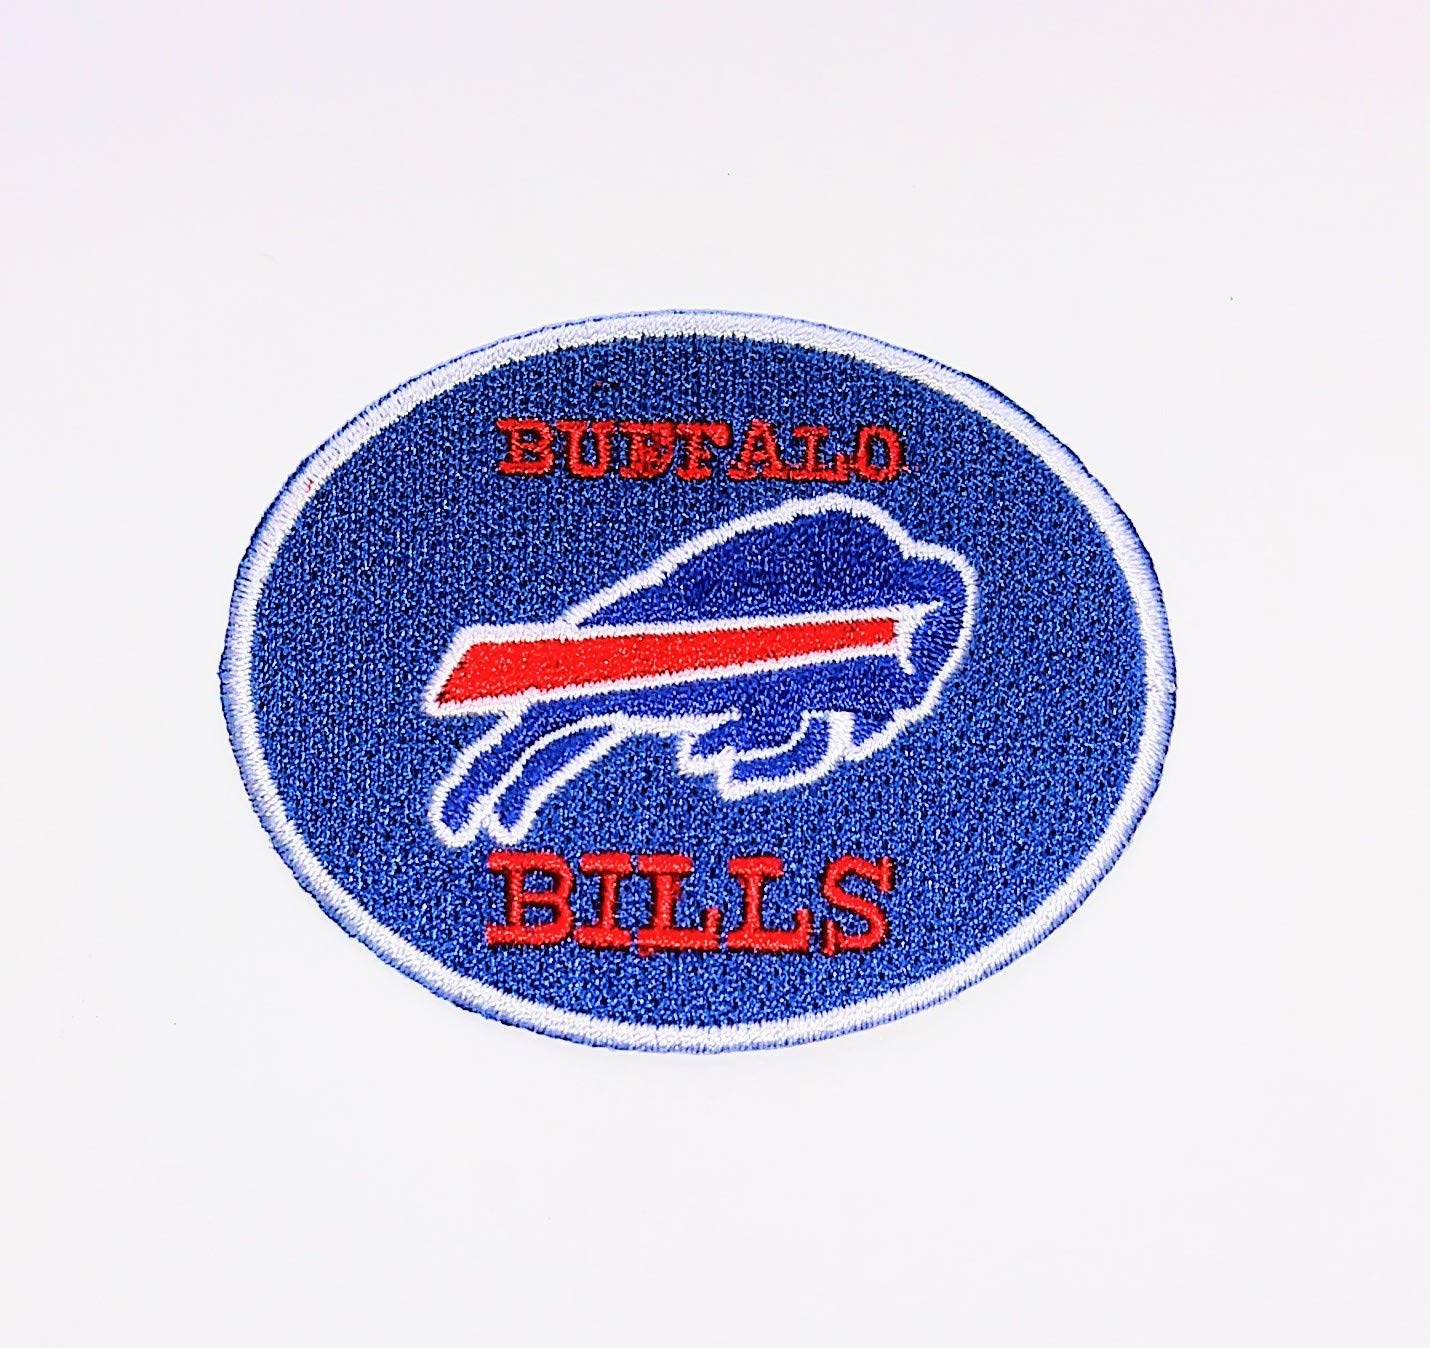 BILLS iron on embroidered EMBROIDERY Super intense SALE patches patch X 2.8 San Jose Mall 2. SIZE